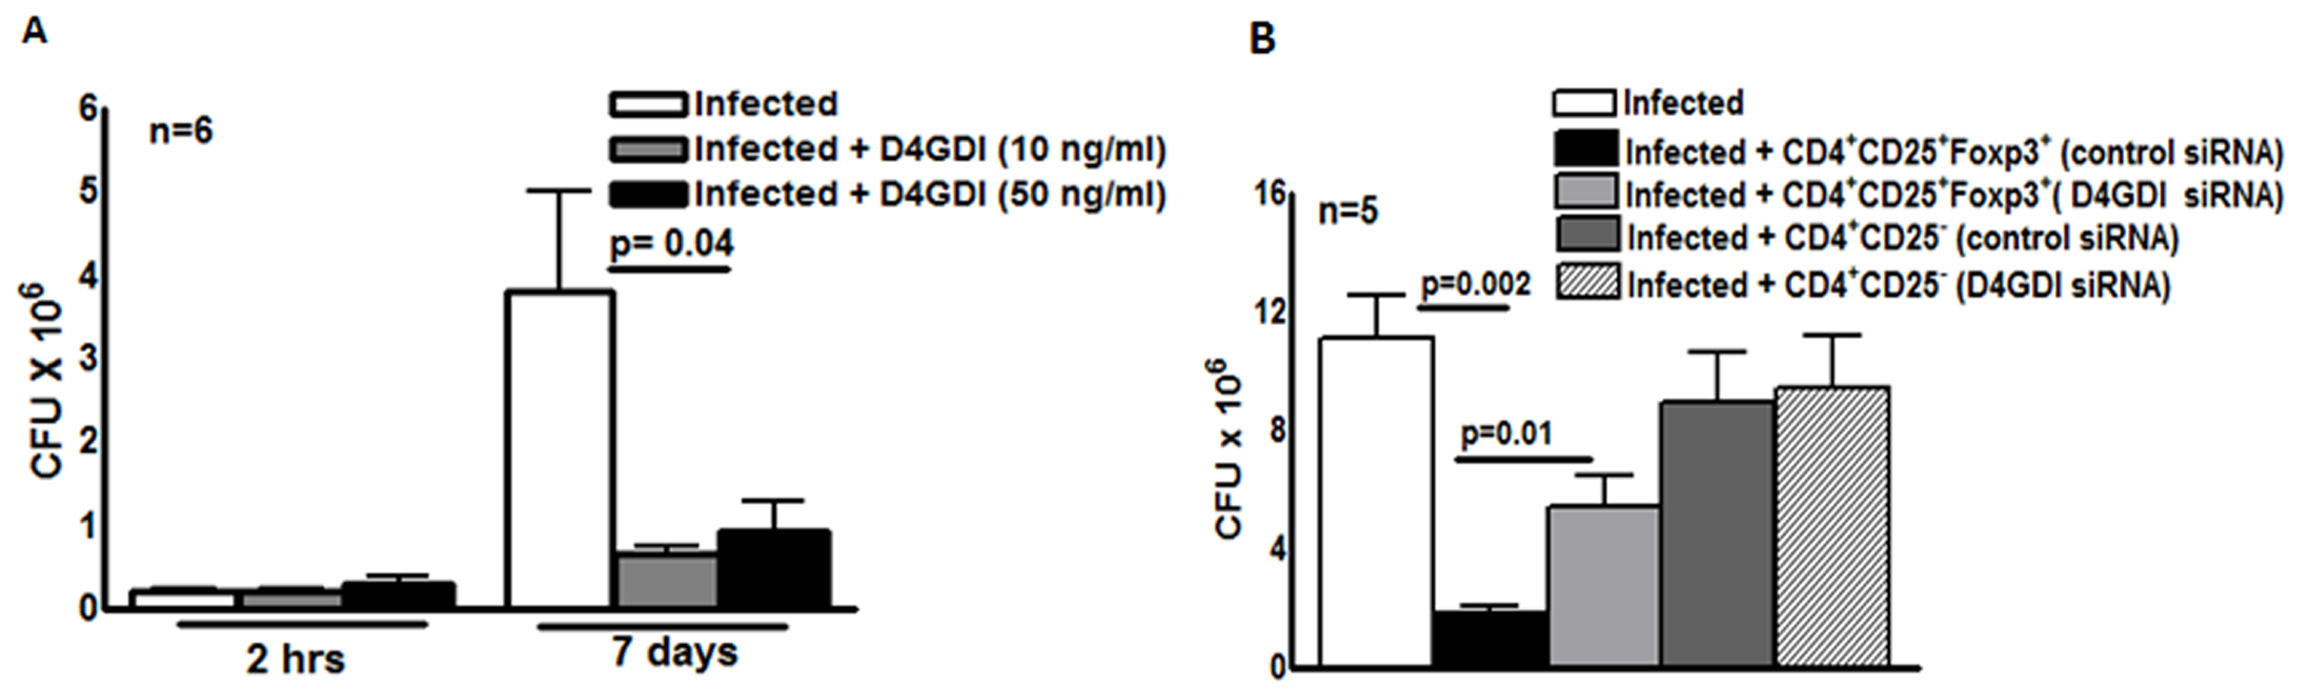 D4GDI inhibits growth of <i>M. tb</i> in macrophages.